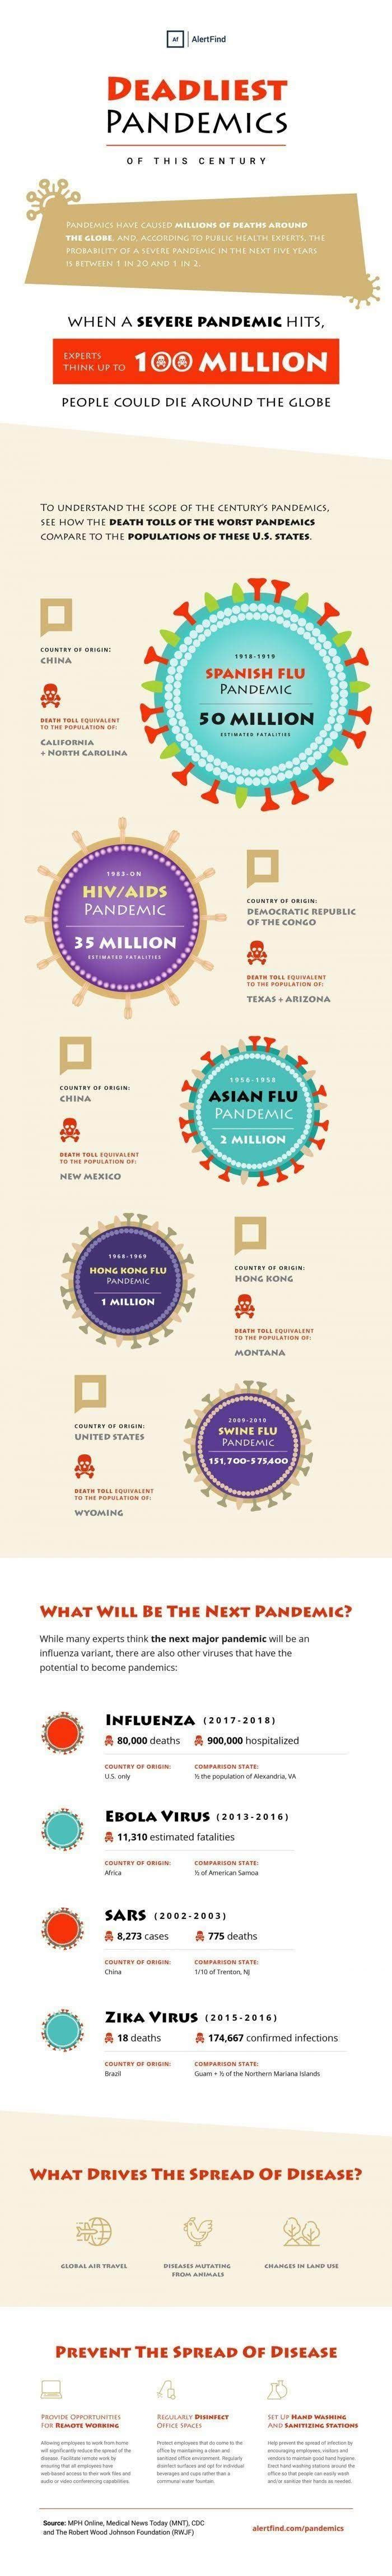 A CENTURY OF PANDEMICS #INFOGRAPHIC